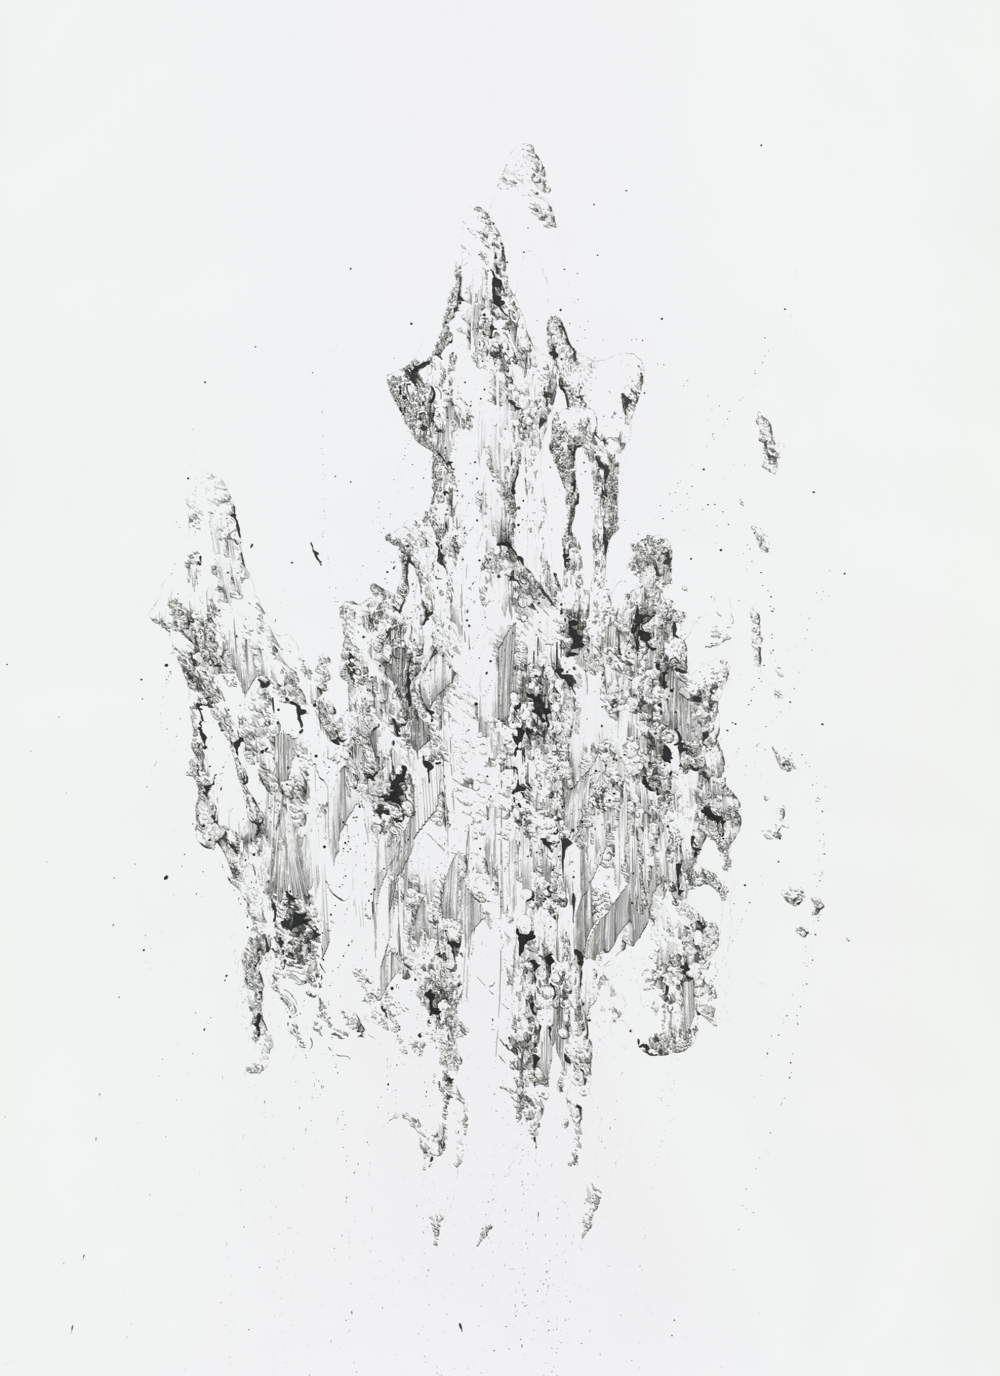 Bettina Krieg | P 163 Untitled | Ink on Paper | 206 x 150 cm | 2014